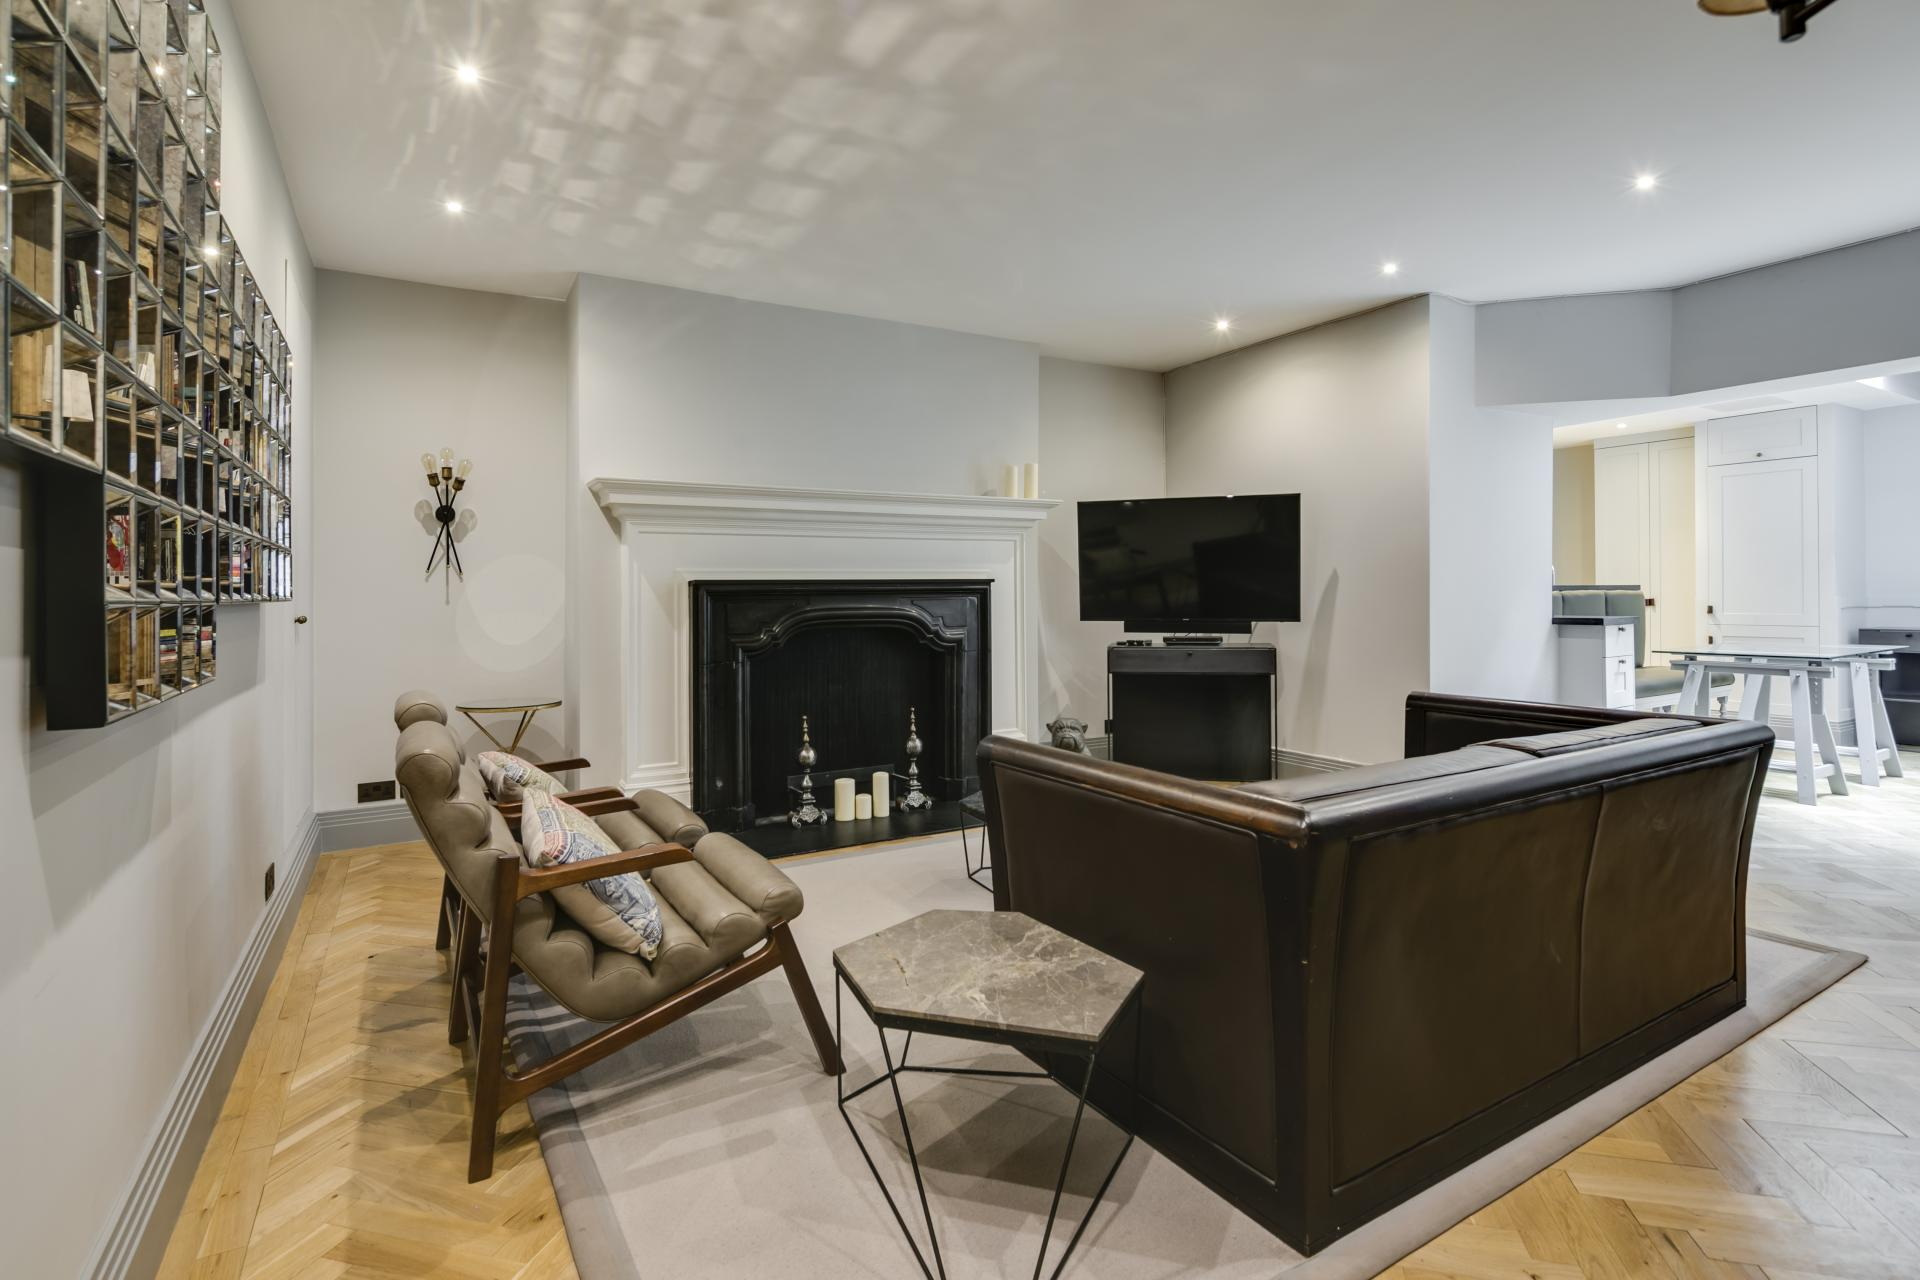 Modern living at Luxurious Mayfair Apartments, Mayfair, London